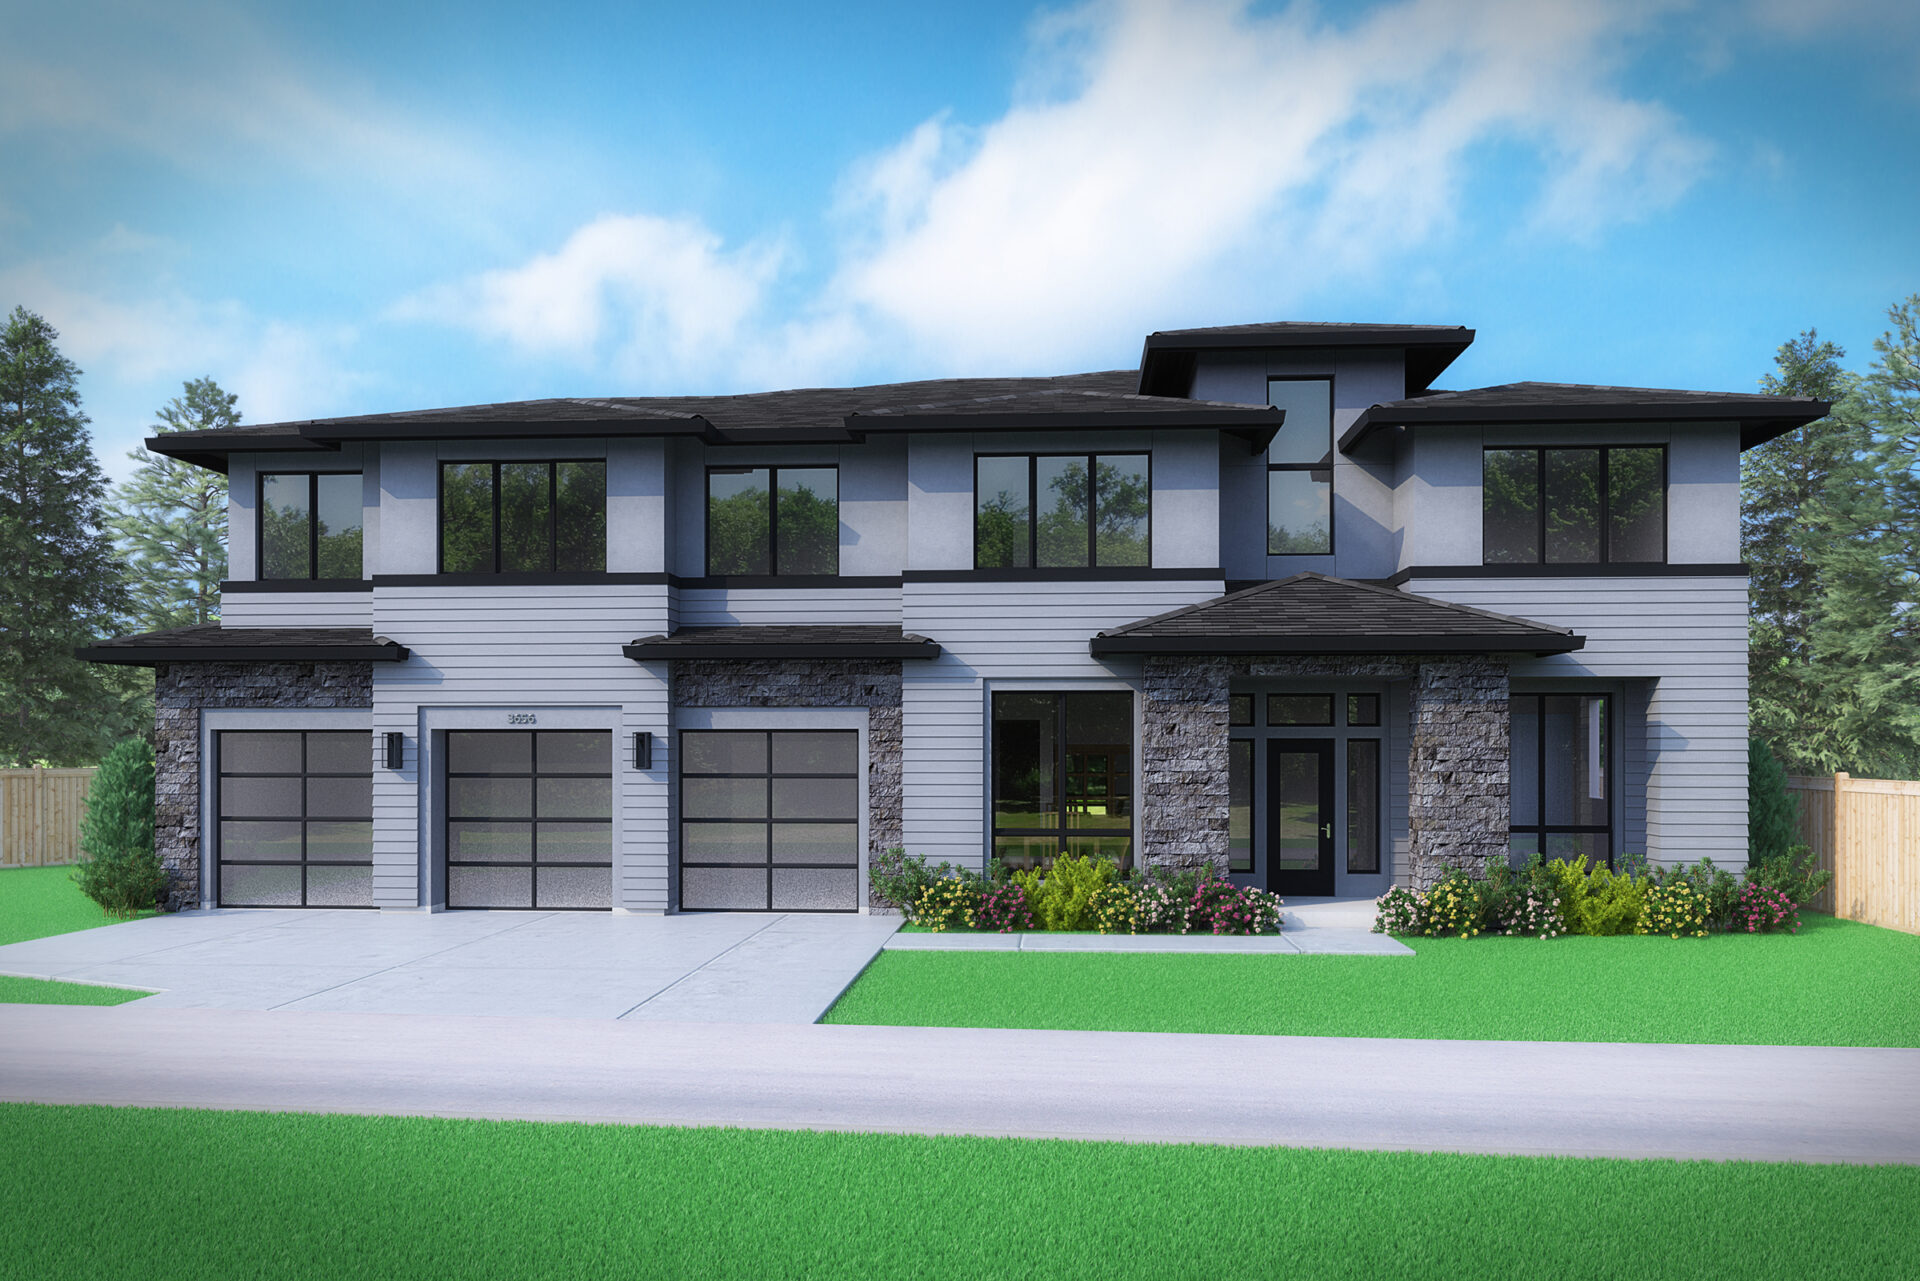 View our new luxury home construction on 16439 SE 37th Ct, in Bellevue, WA from MN Custom Homes